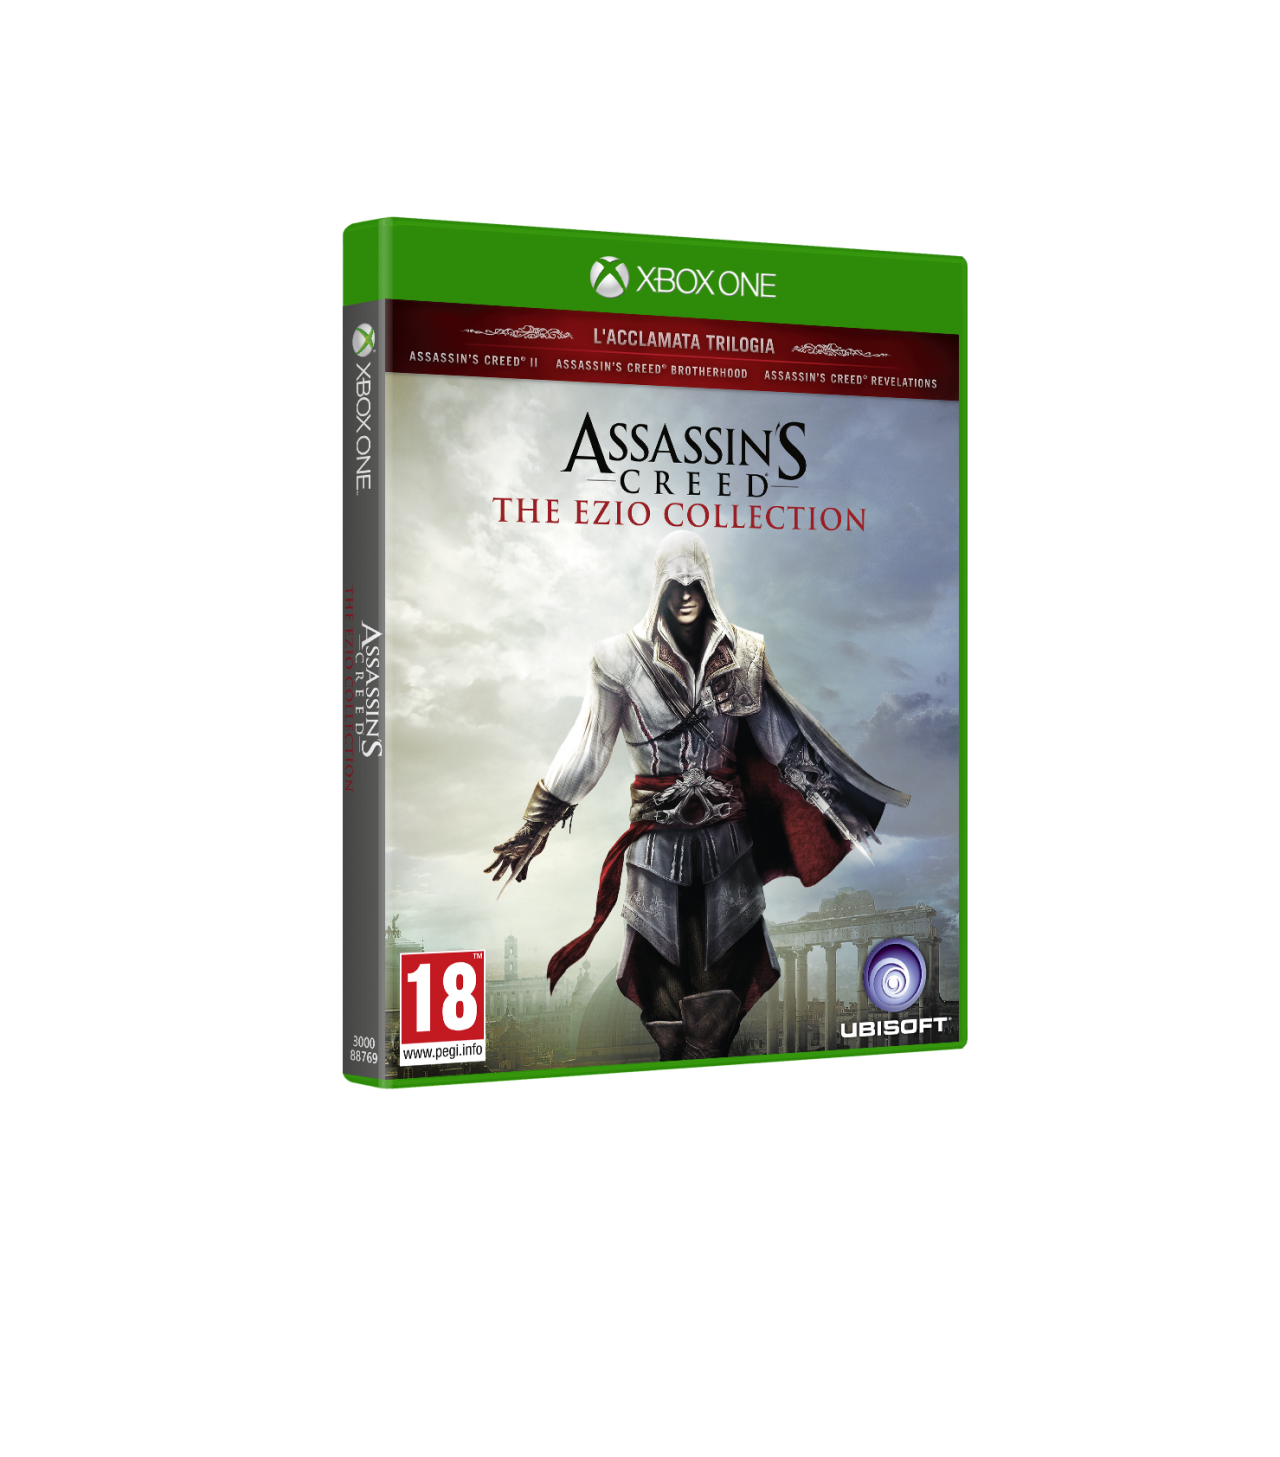 Assassin's Creed The Ezio Collection XONE